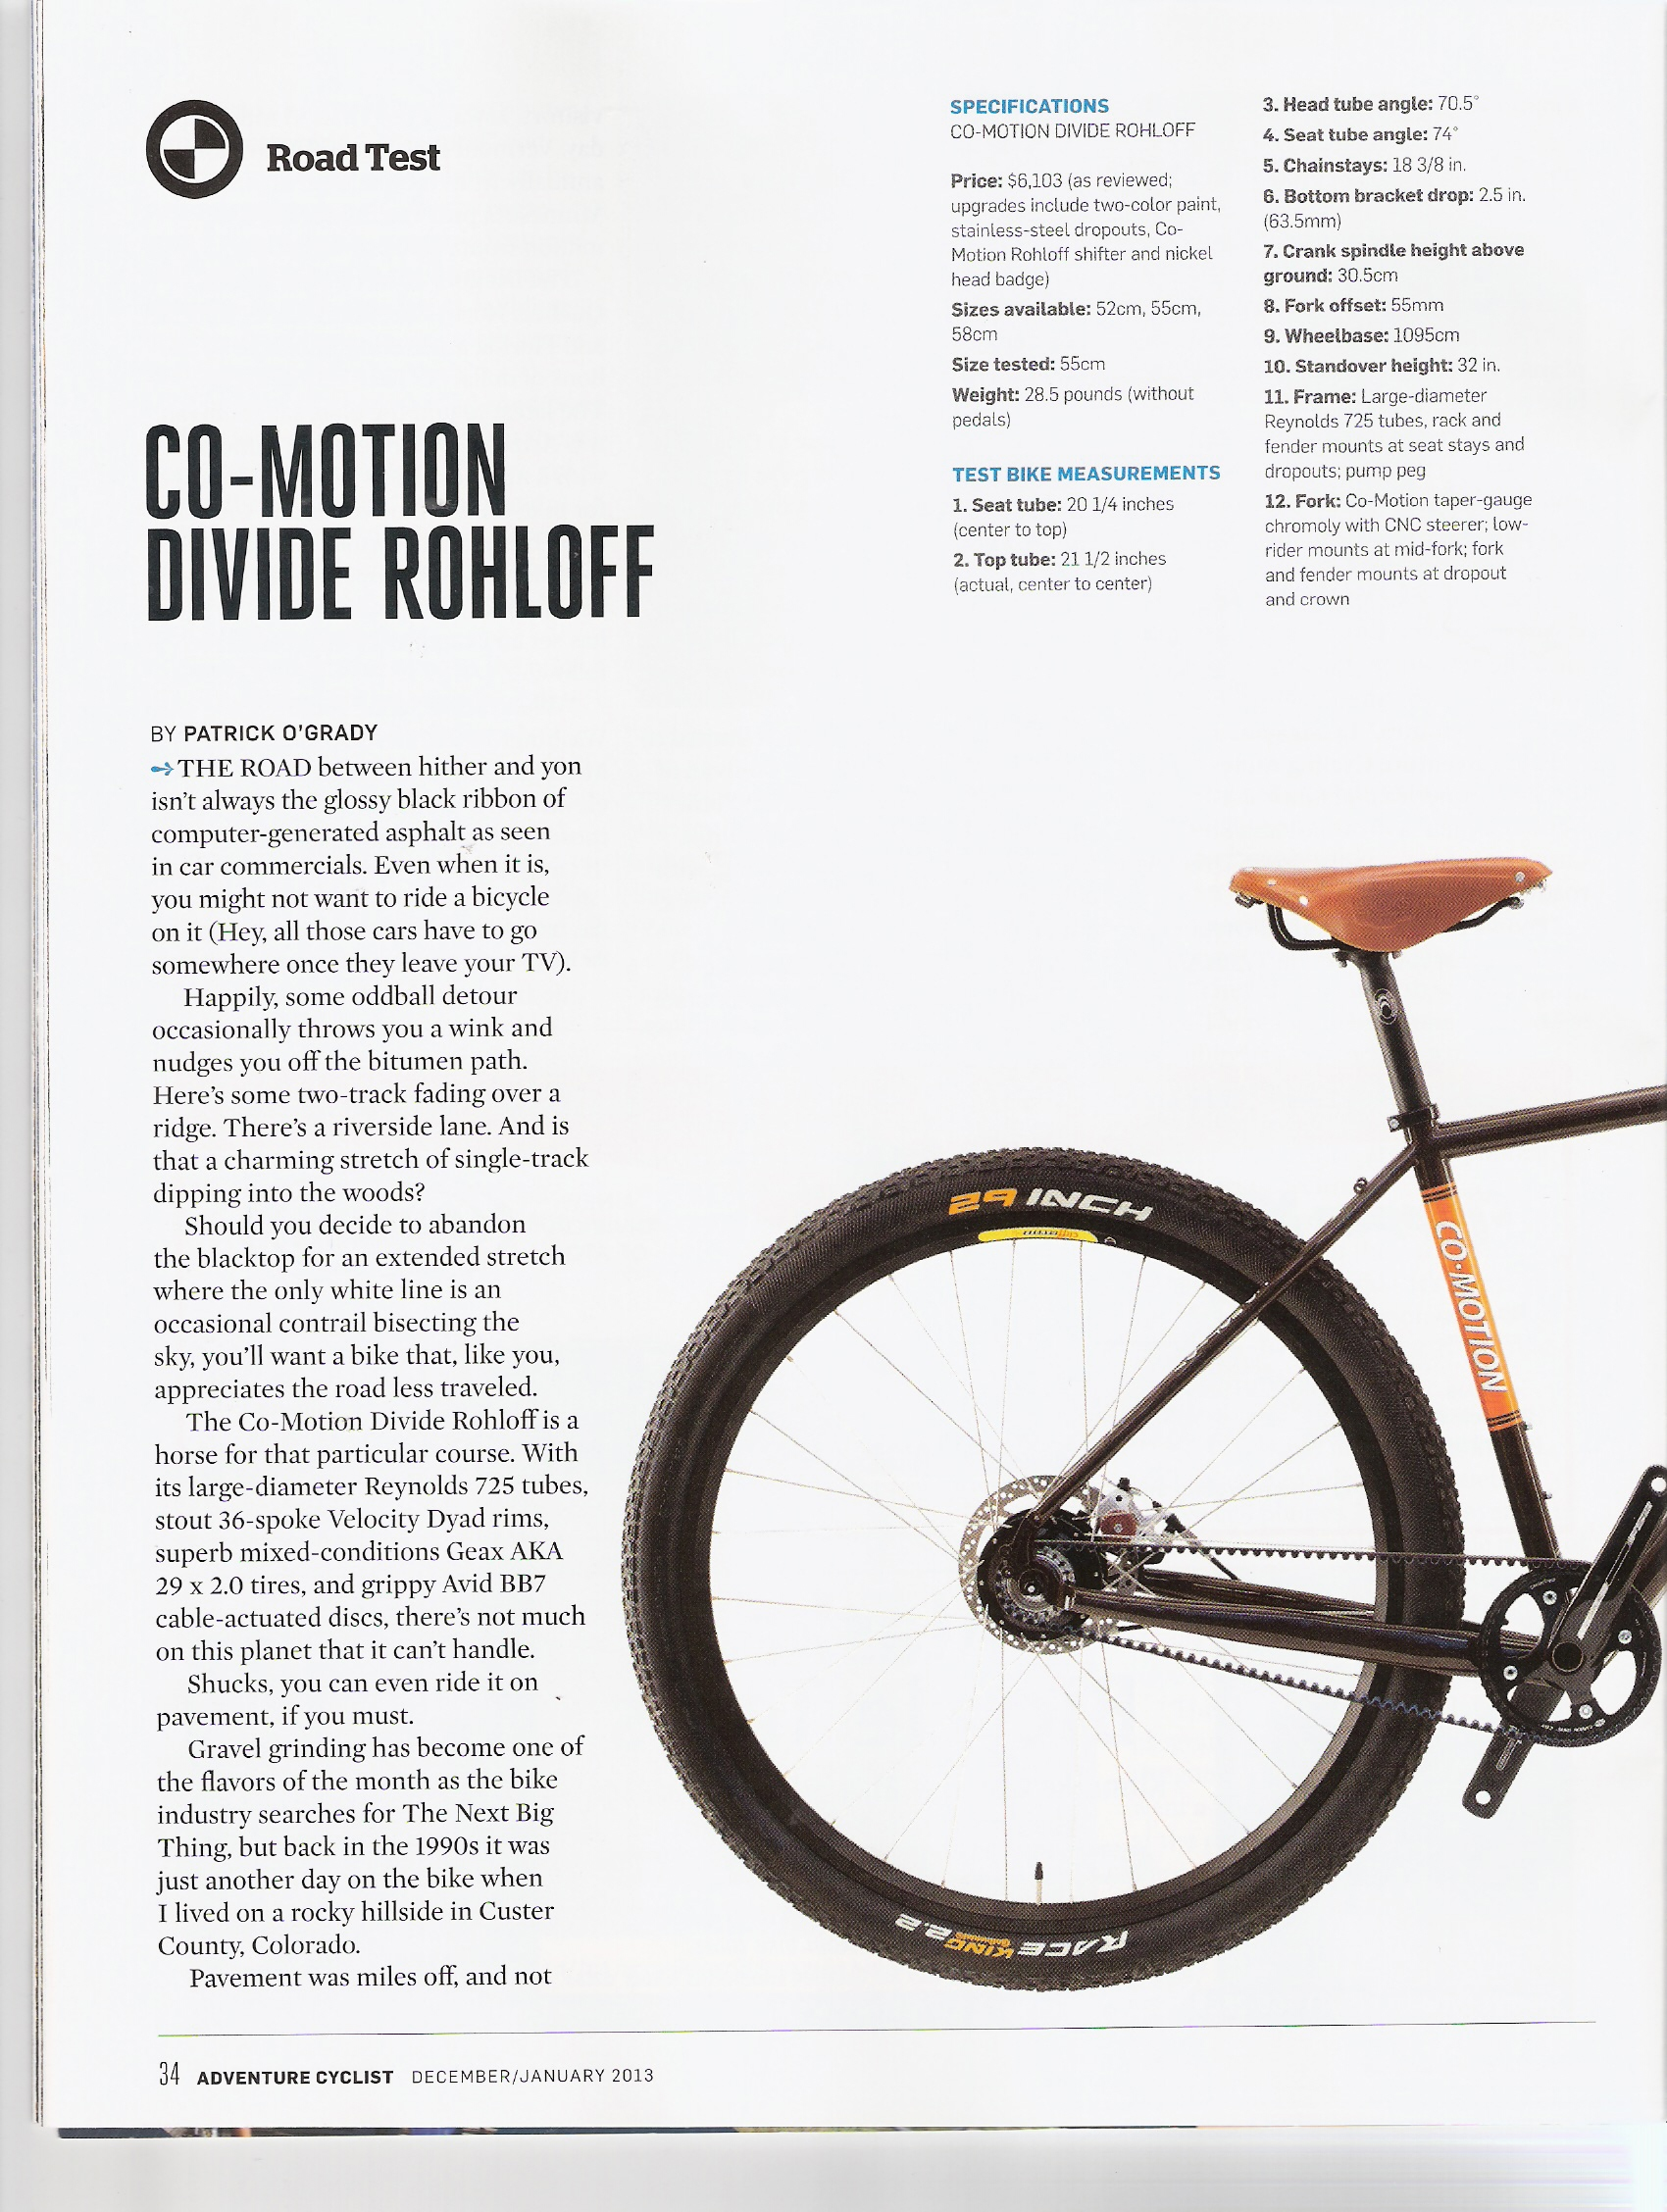 Adventure Cyclist_Co-Motion Divide Rohloff 1